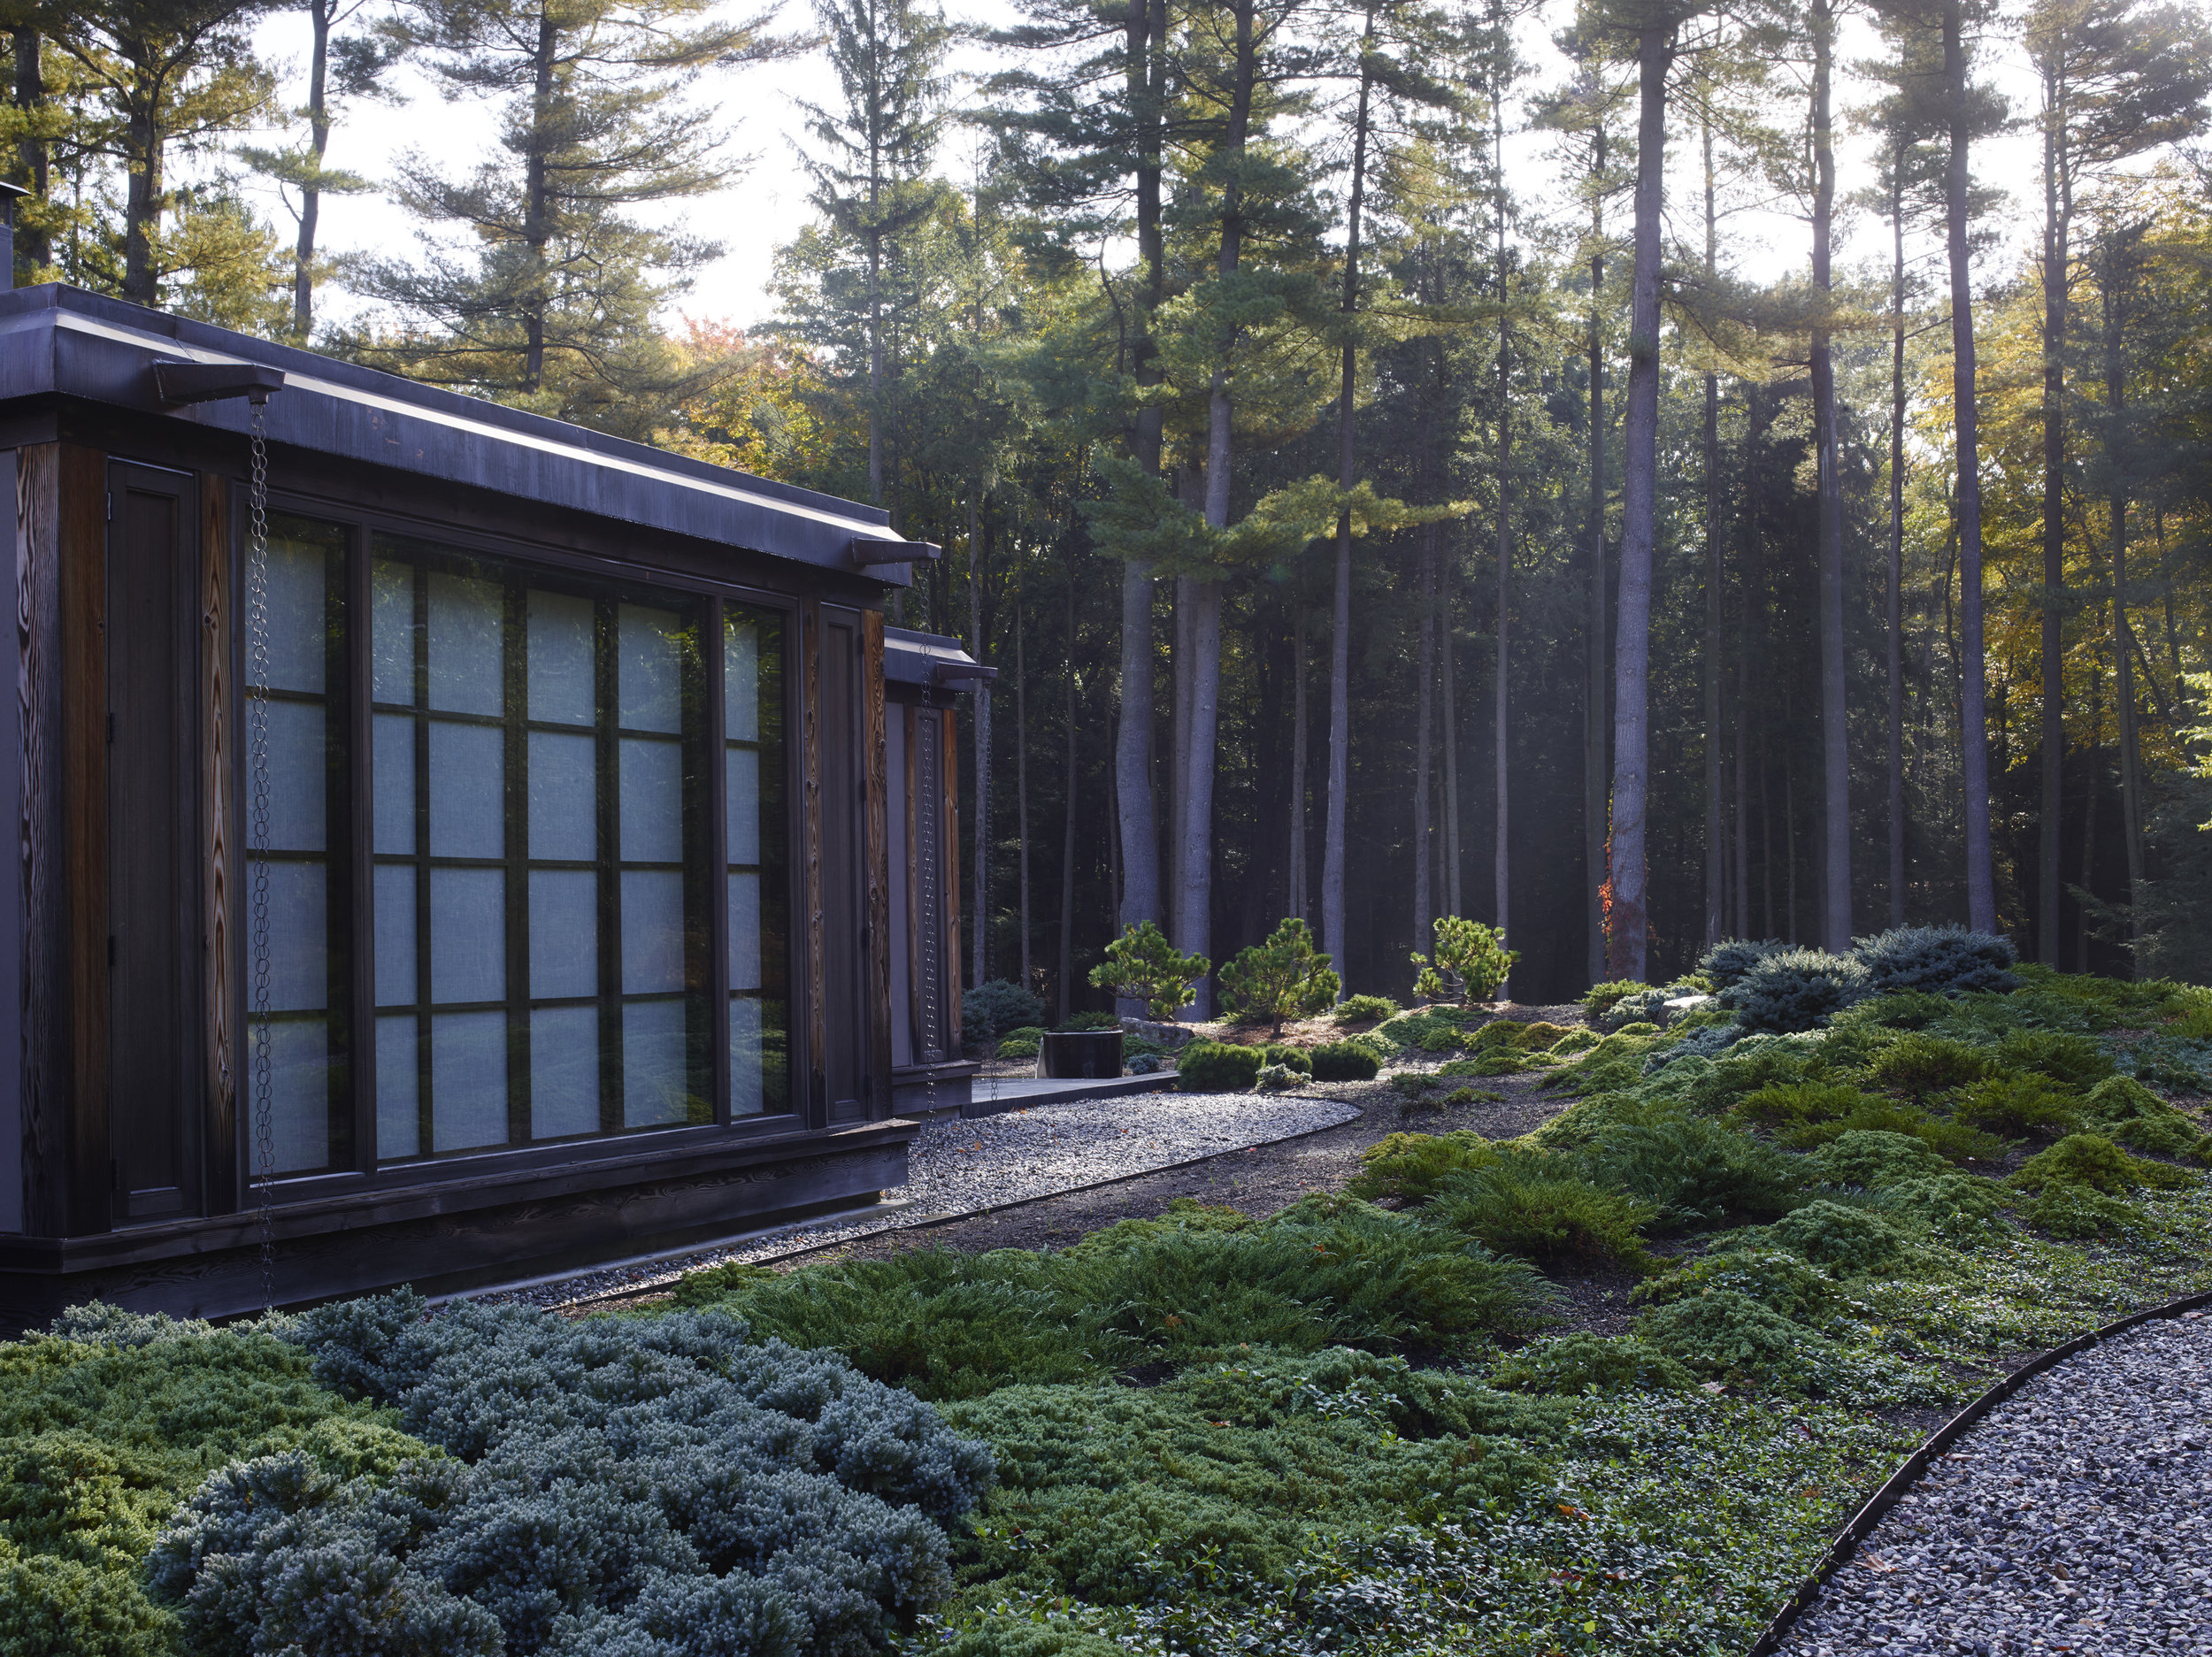 Japanese inspired teahouse